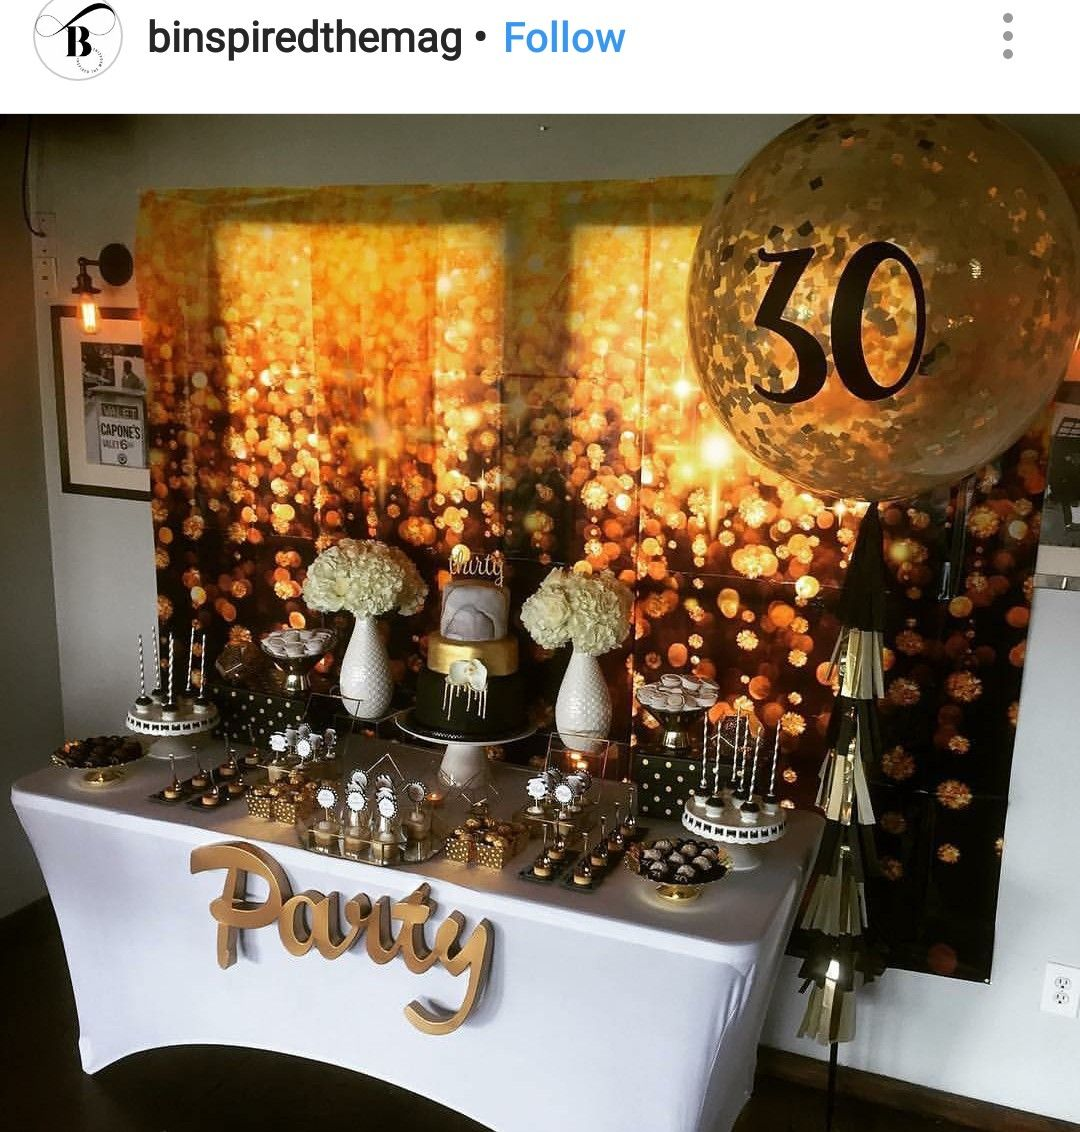 Birthday Table Top Decorations: 30th Birthday Party Dessert Table And Decor